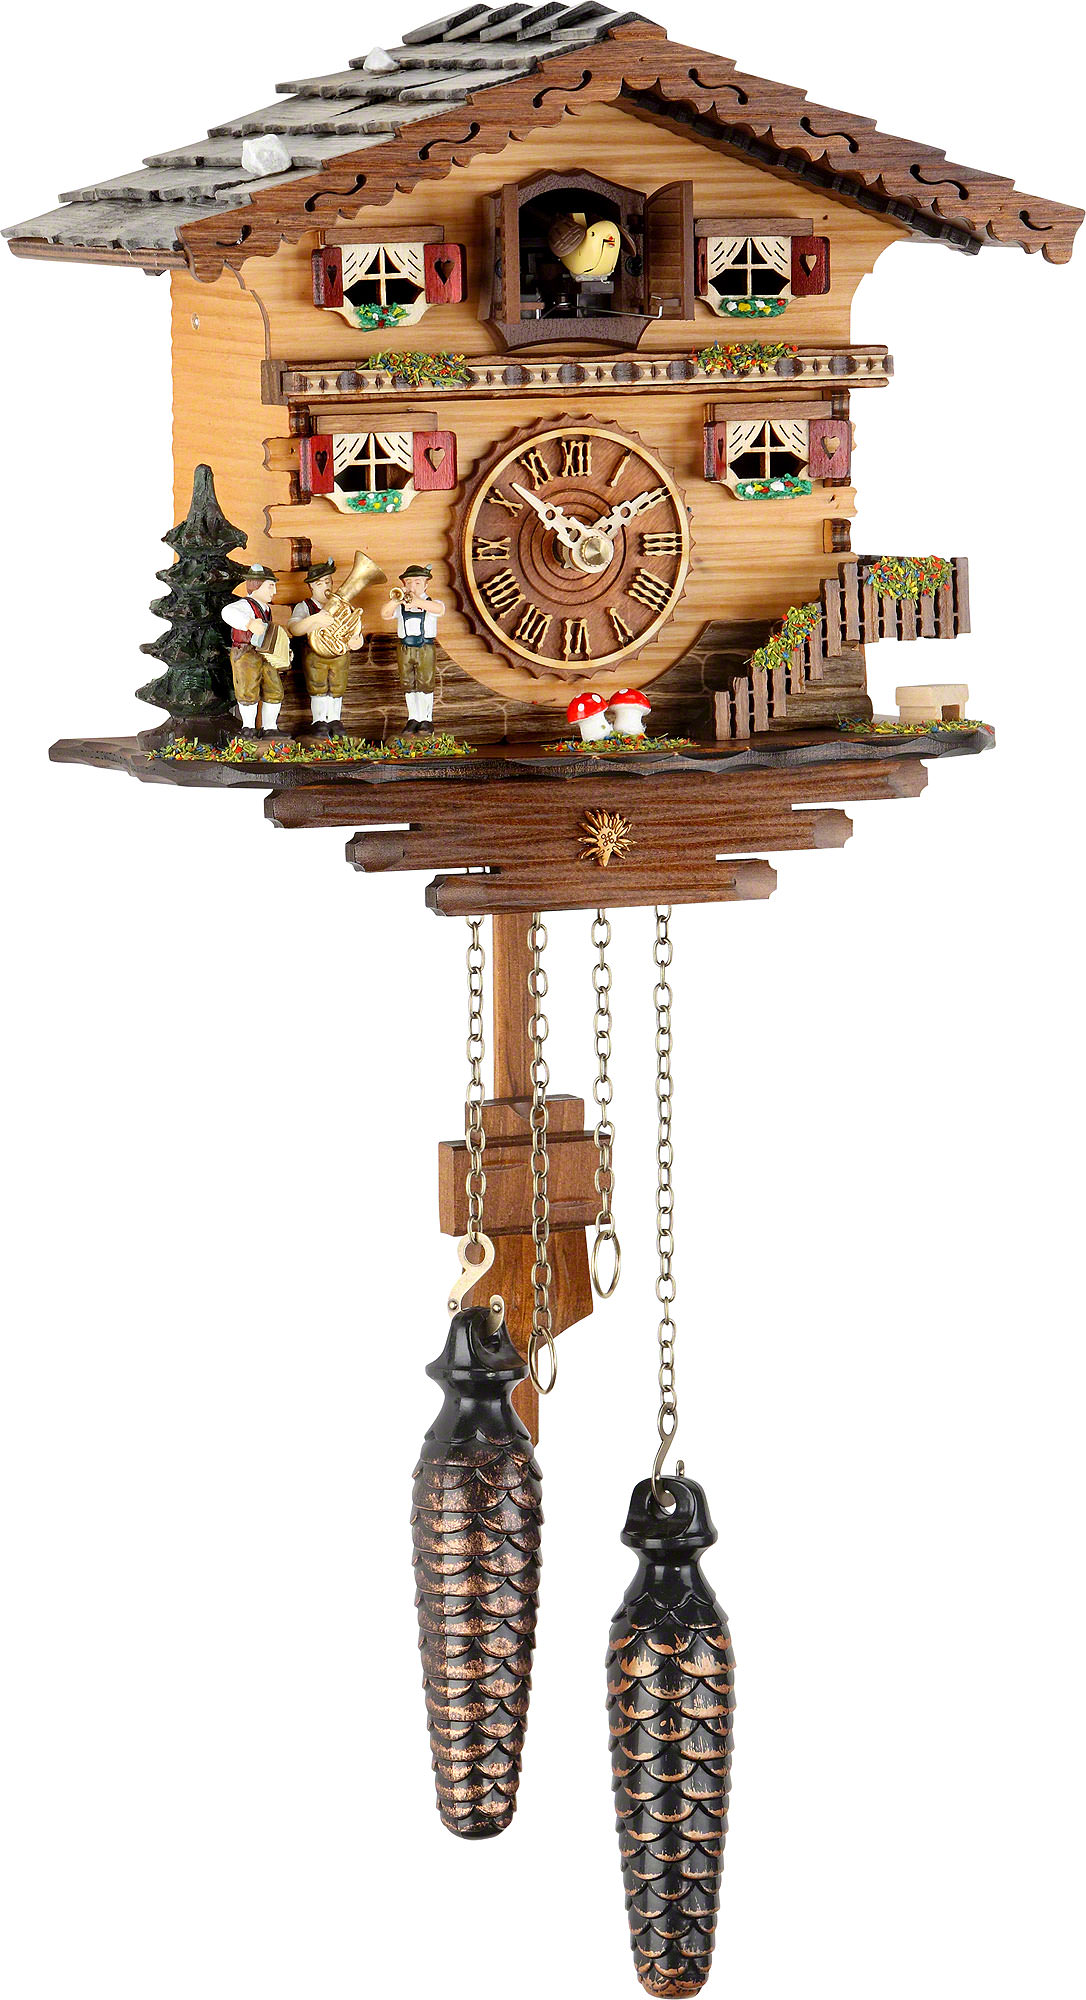 cuckoo clock instructions with Cuckoo Clock Quartz Movement Chalet Style 19cm By Trenkle Uhren  709 on 1526 furthermore Black White Alarm Clock likewise Stock Photo Triberg Im Schwarzwald Watch Shop On The Main Road With The Worlds 126191117 furthermore Cuckoo Clock 8 Day Movement Chalet Style 34cm By Cuckoo Palace  1033 further Cuckoo Clock Quartz Movement Chalet Style 24cm By Trenkle Uhren  896.